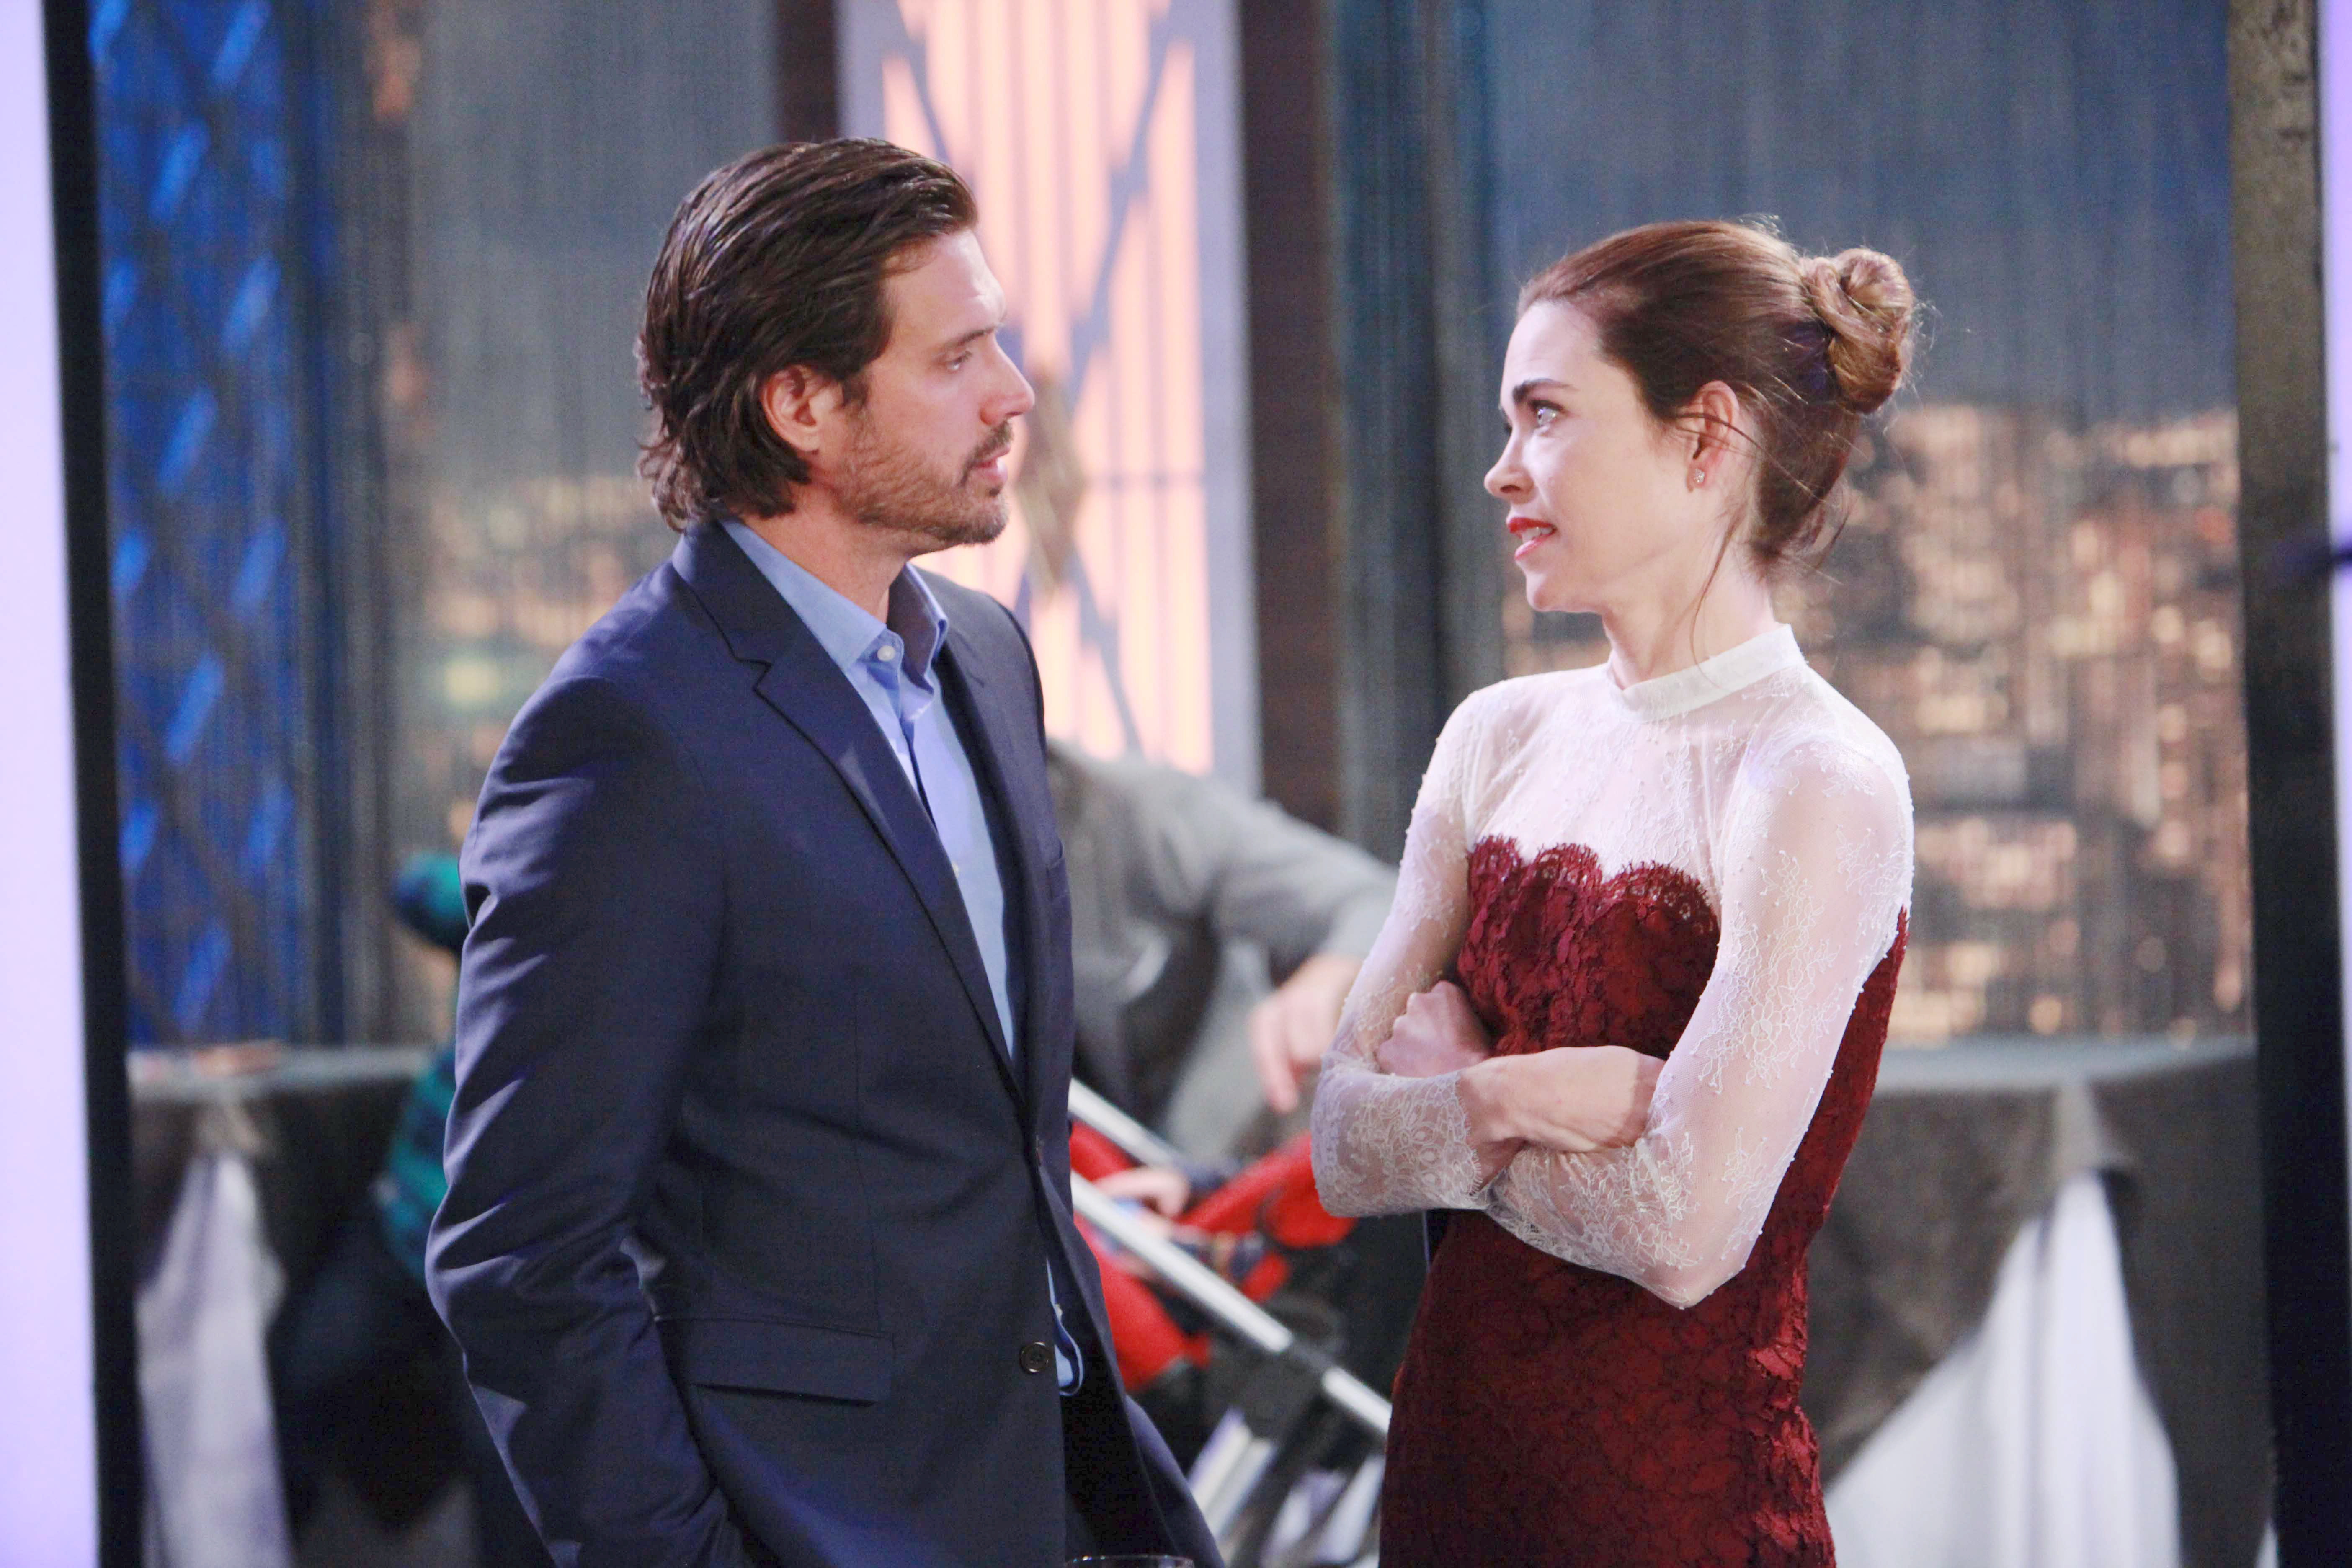 Y&R Spoilers: A night to remember for the Newman Family ends in disaster.